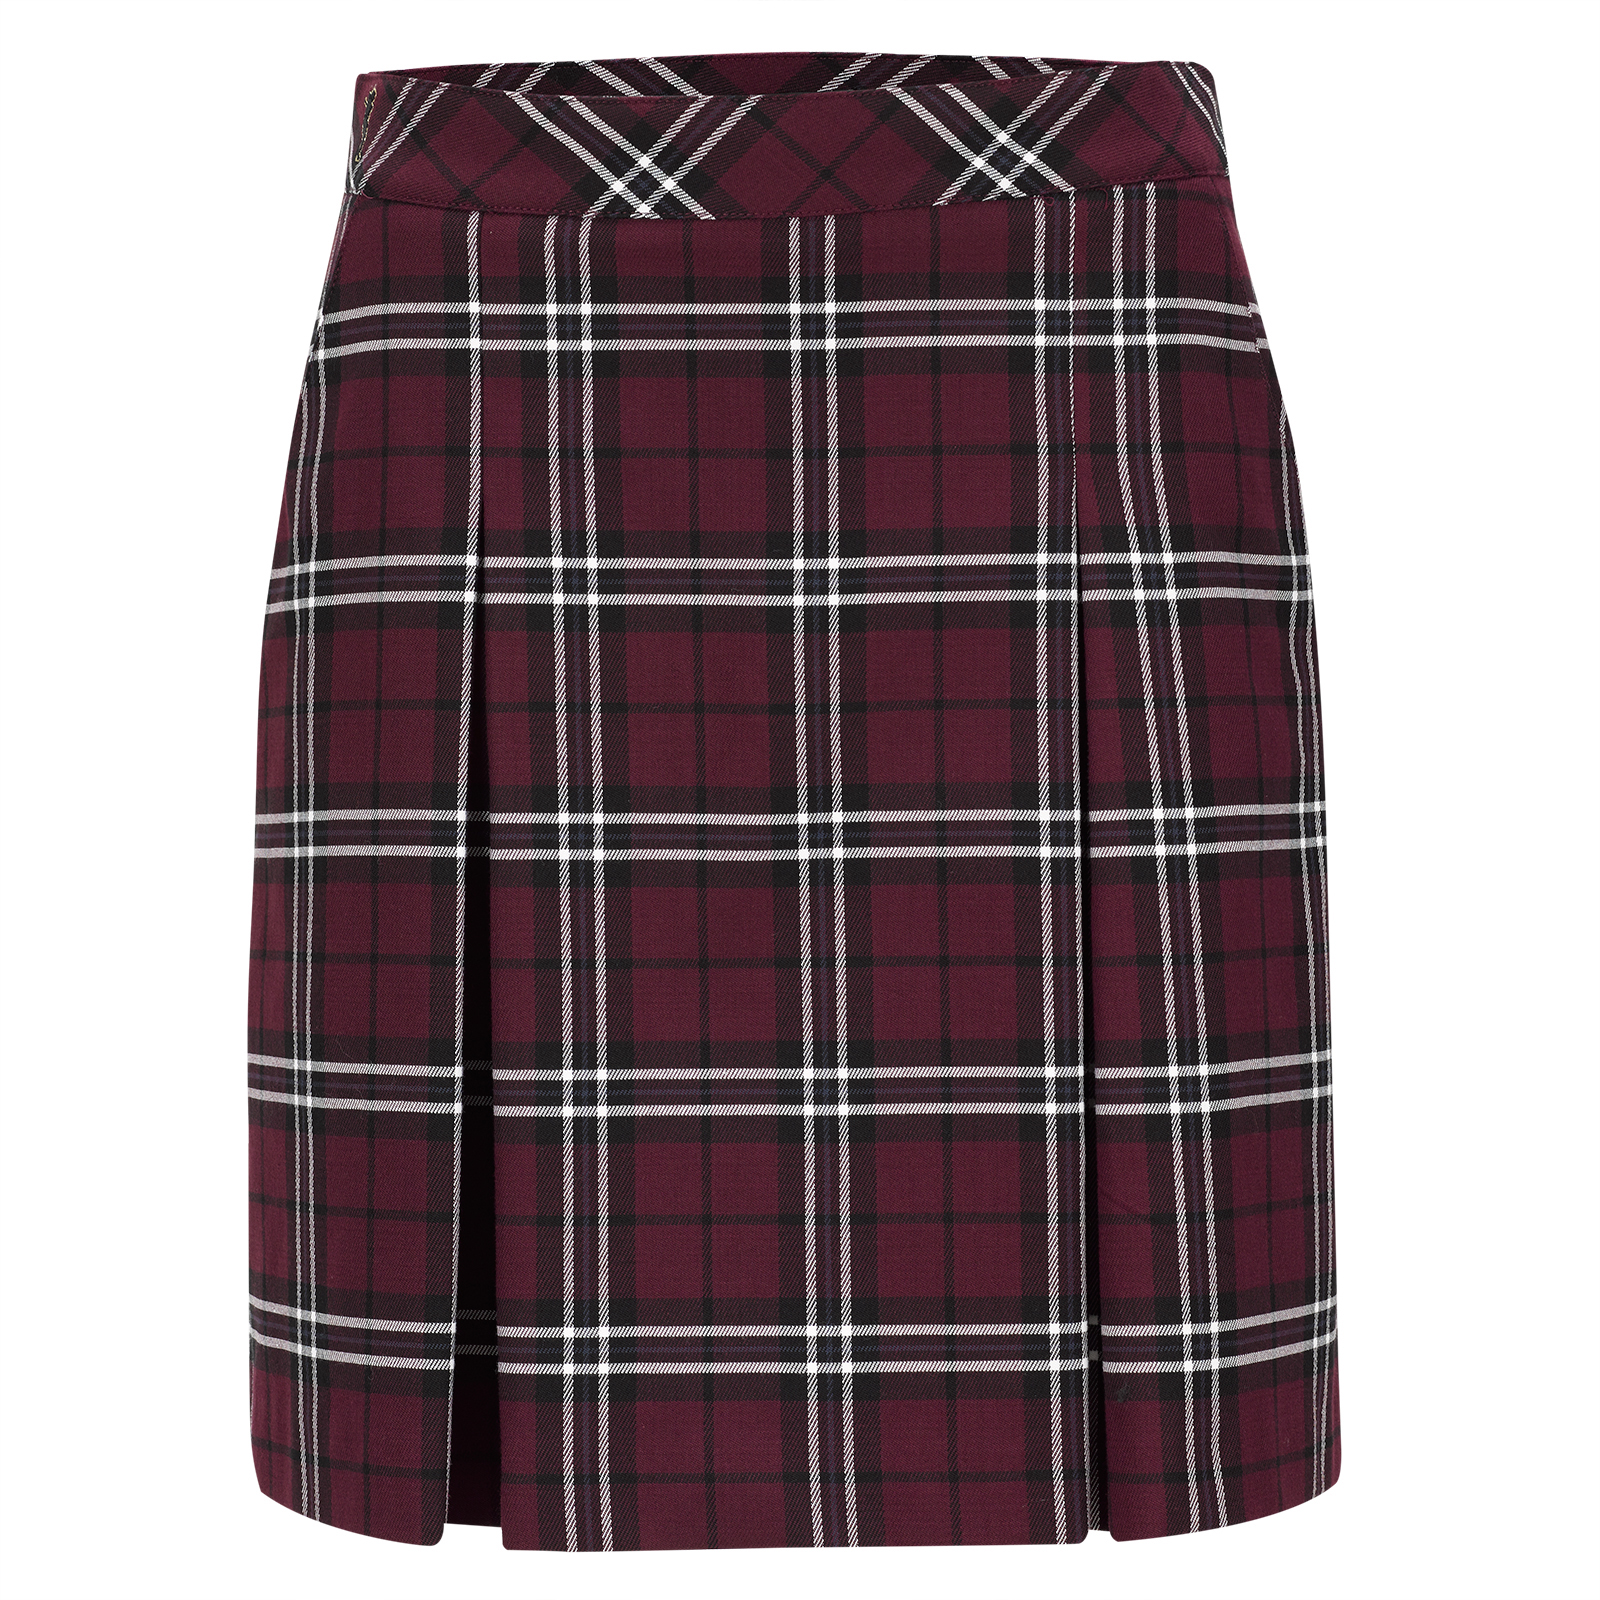 Premium casual ladies' checked golf skort with inner shorts